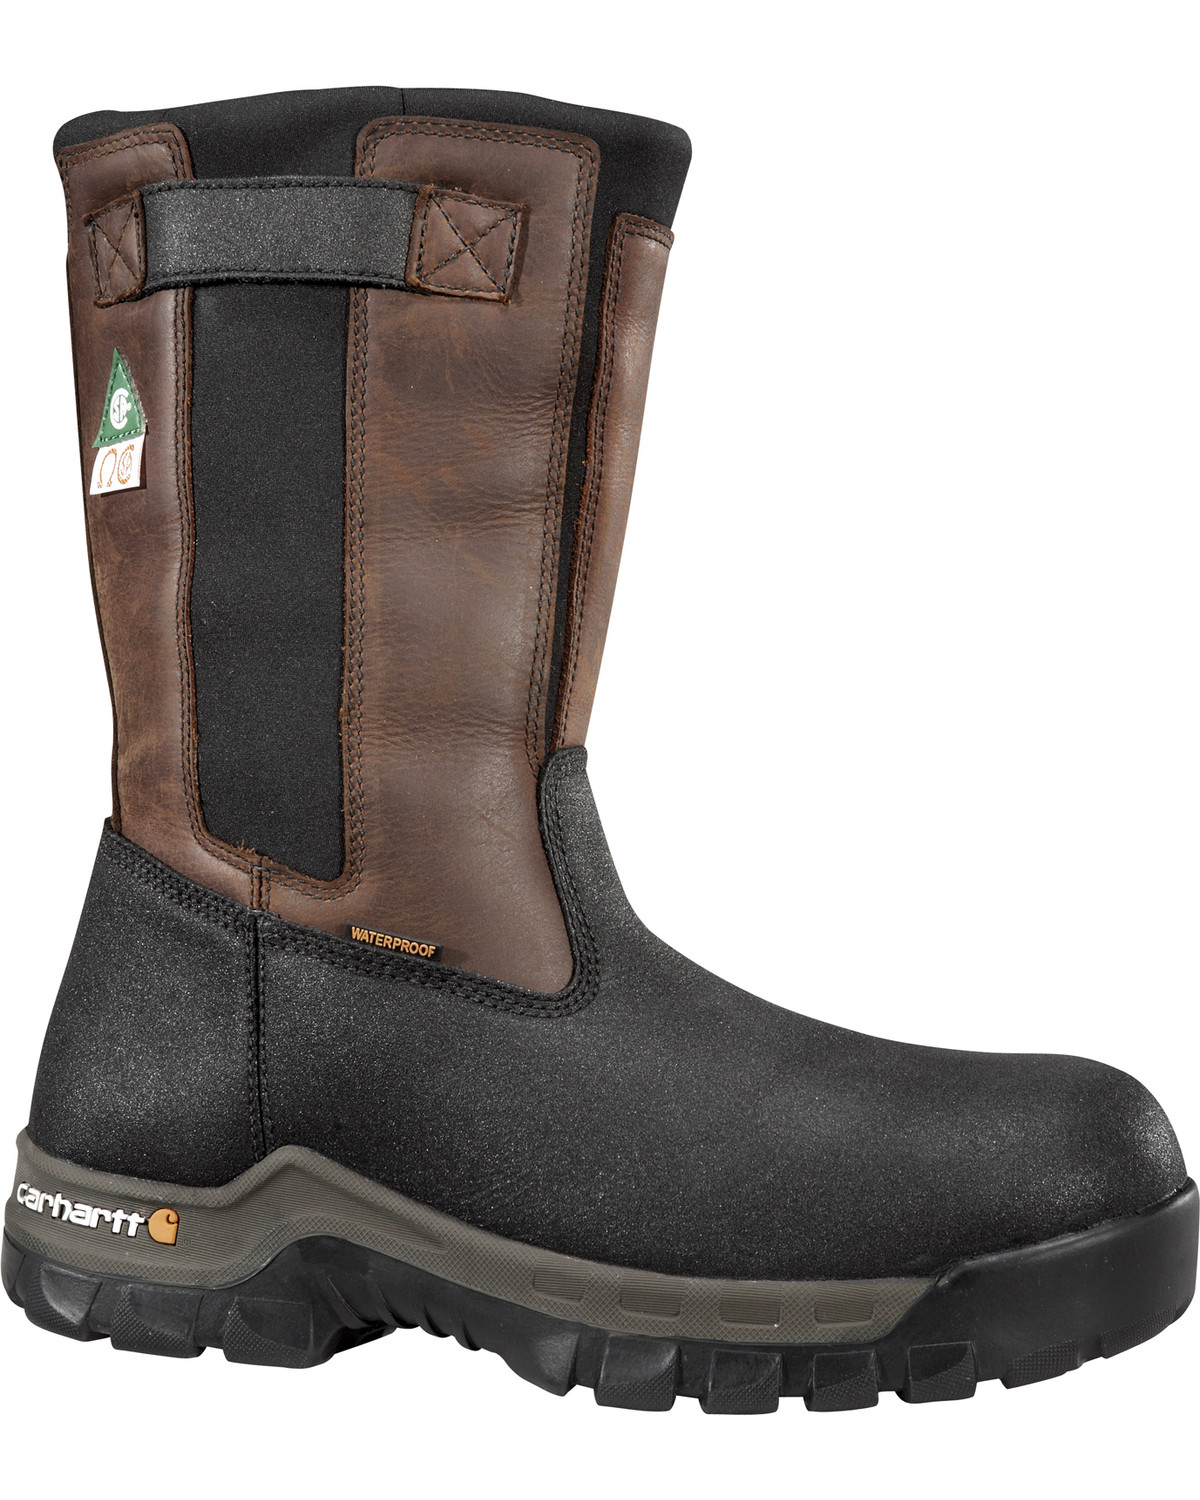 Mens Insulated Work Boots Boot Barn